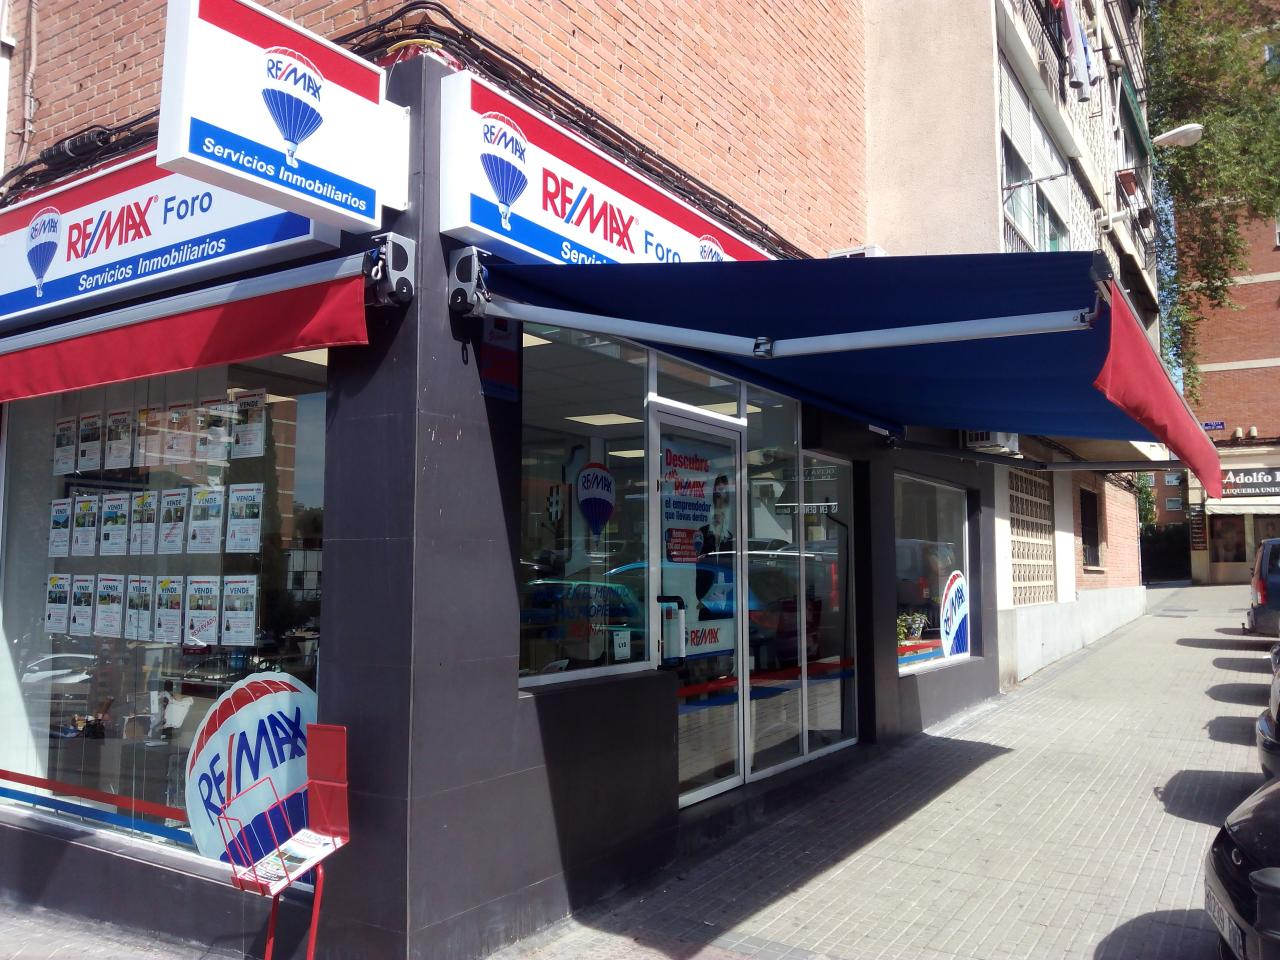 RE/MAX Foro